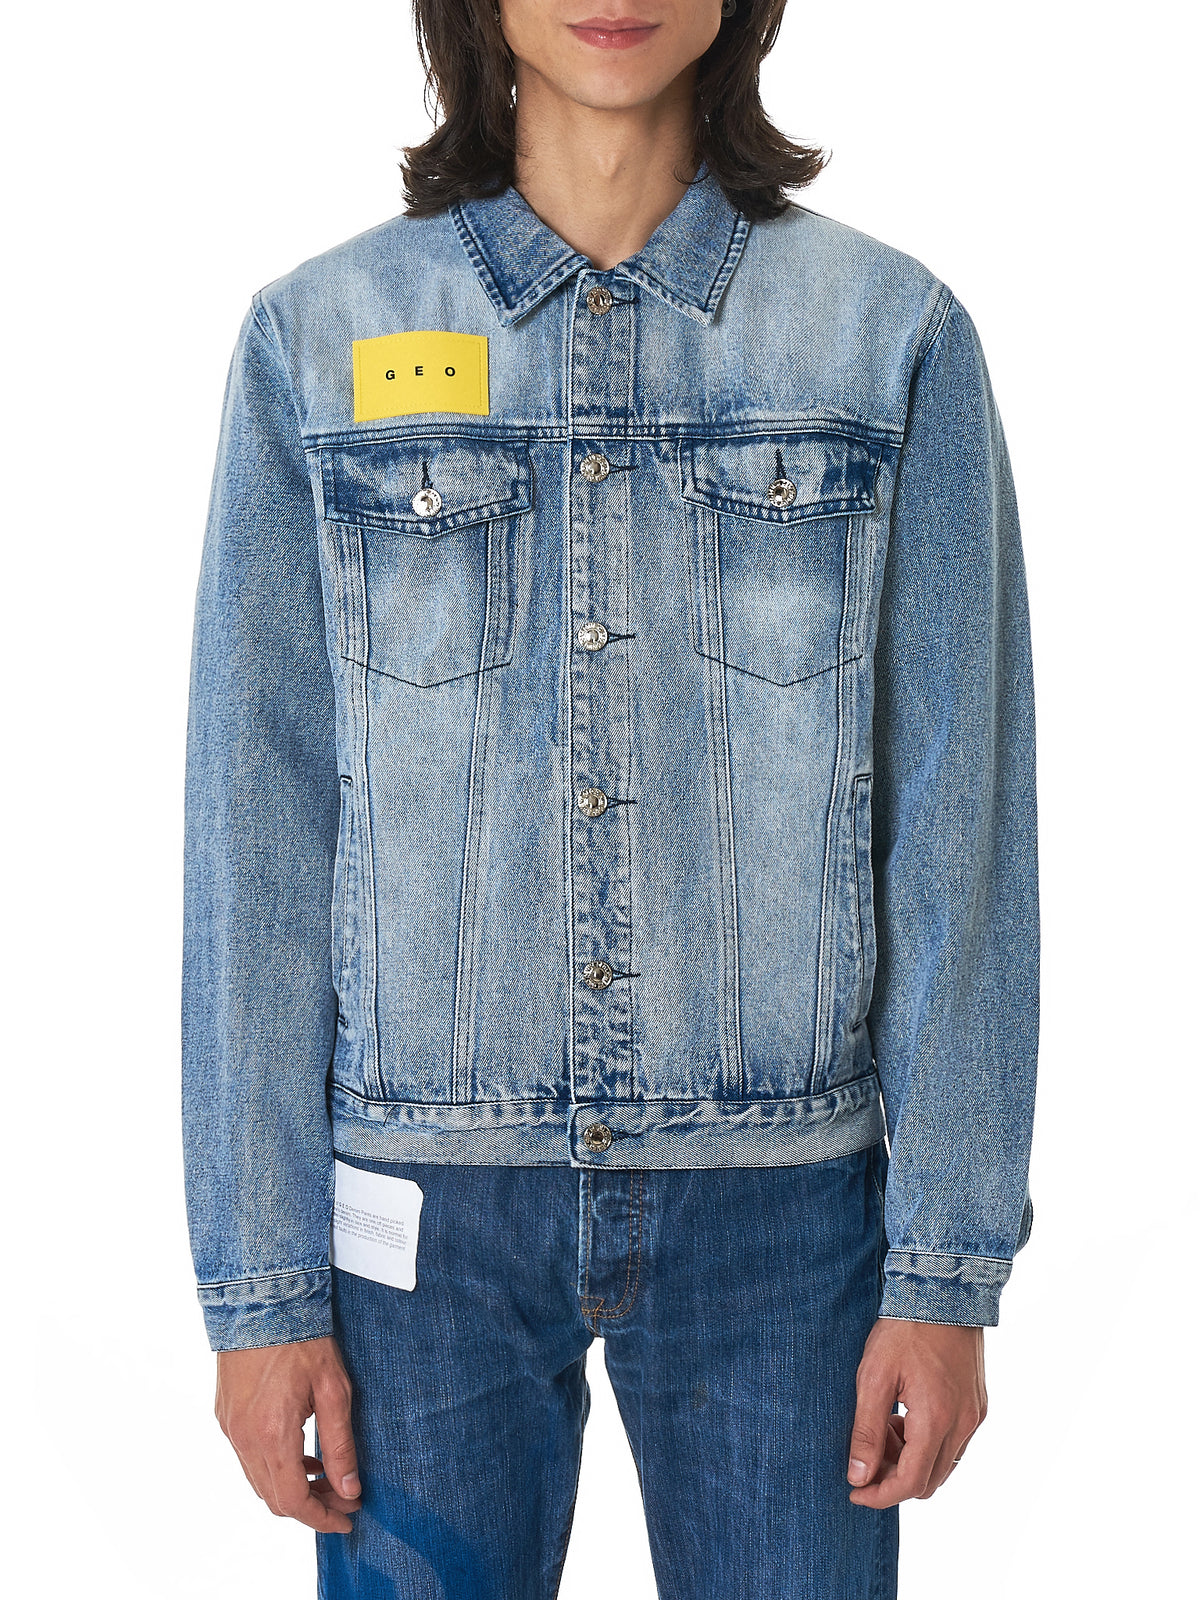 Geo Denim Jacket - Hlorenzo Front